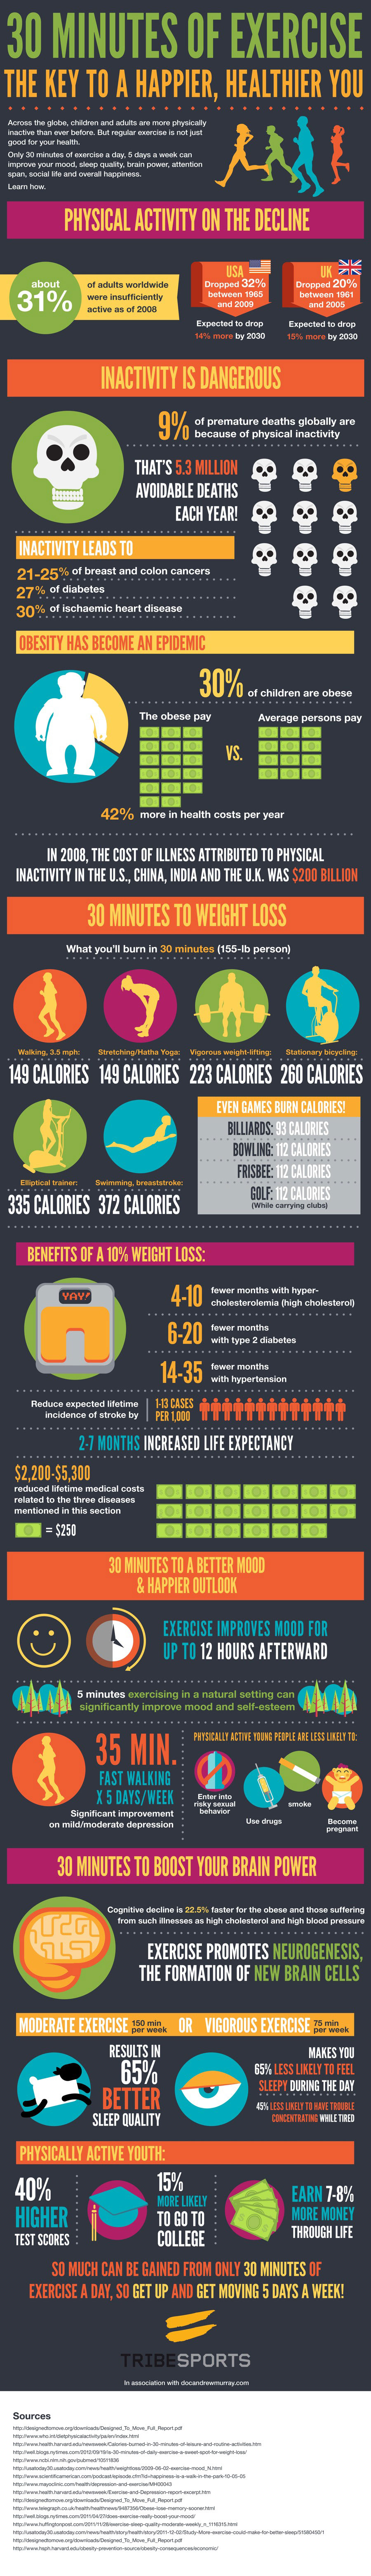 How you benefit from 30 minutes of exercise 5 times a week.